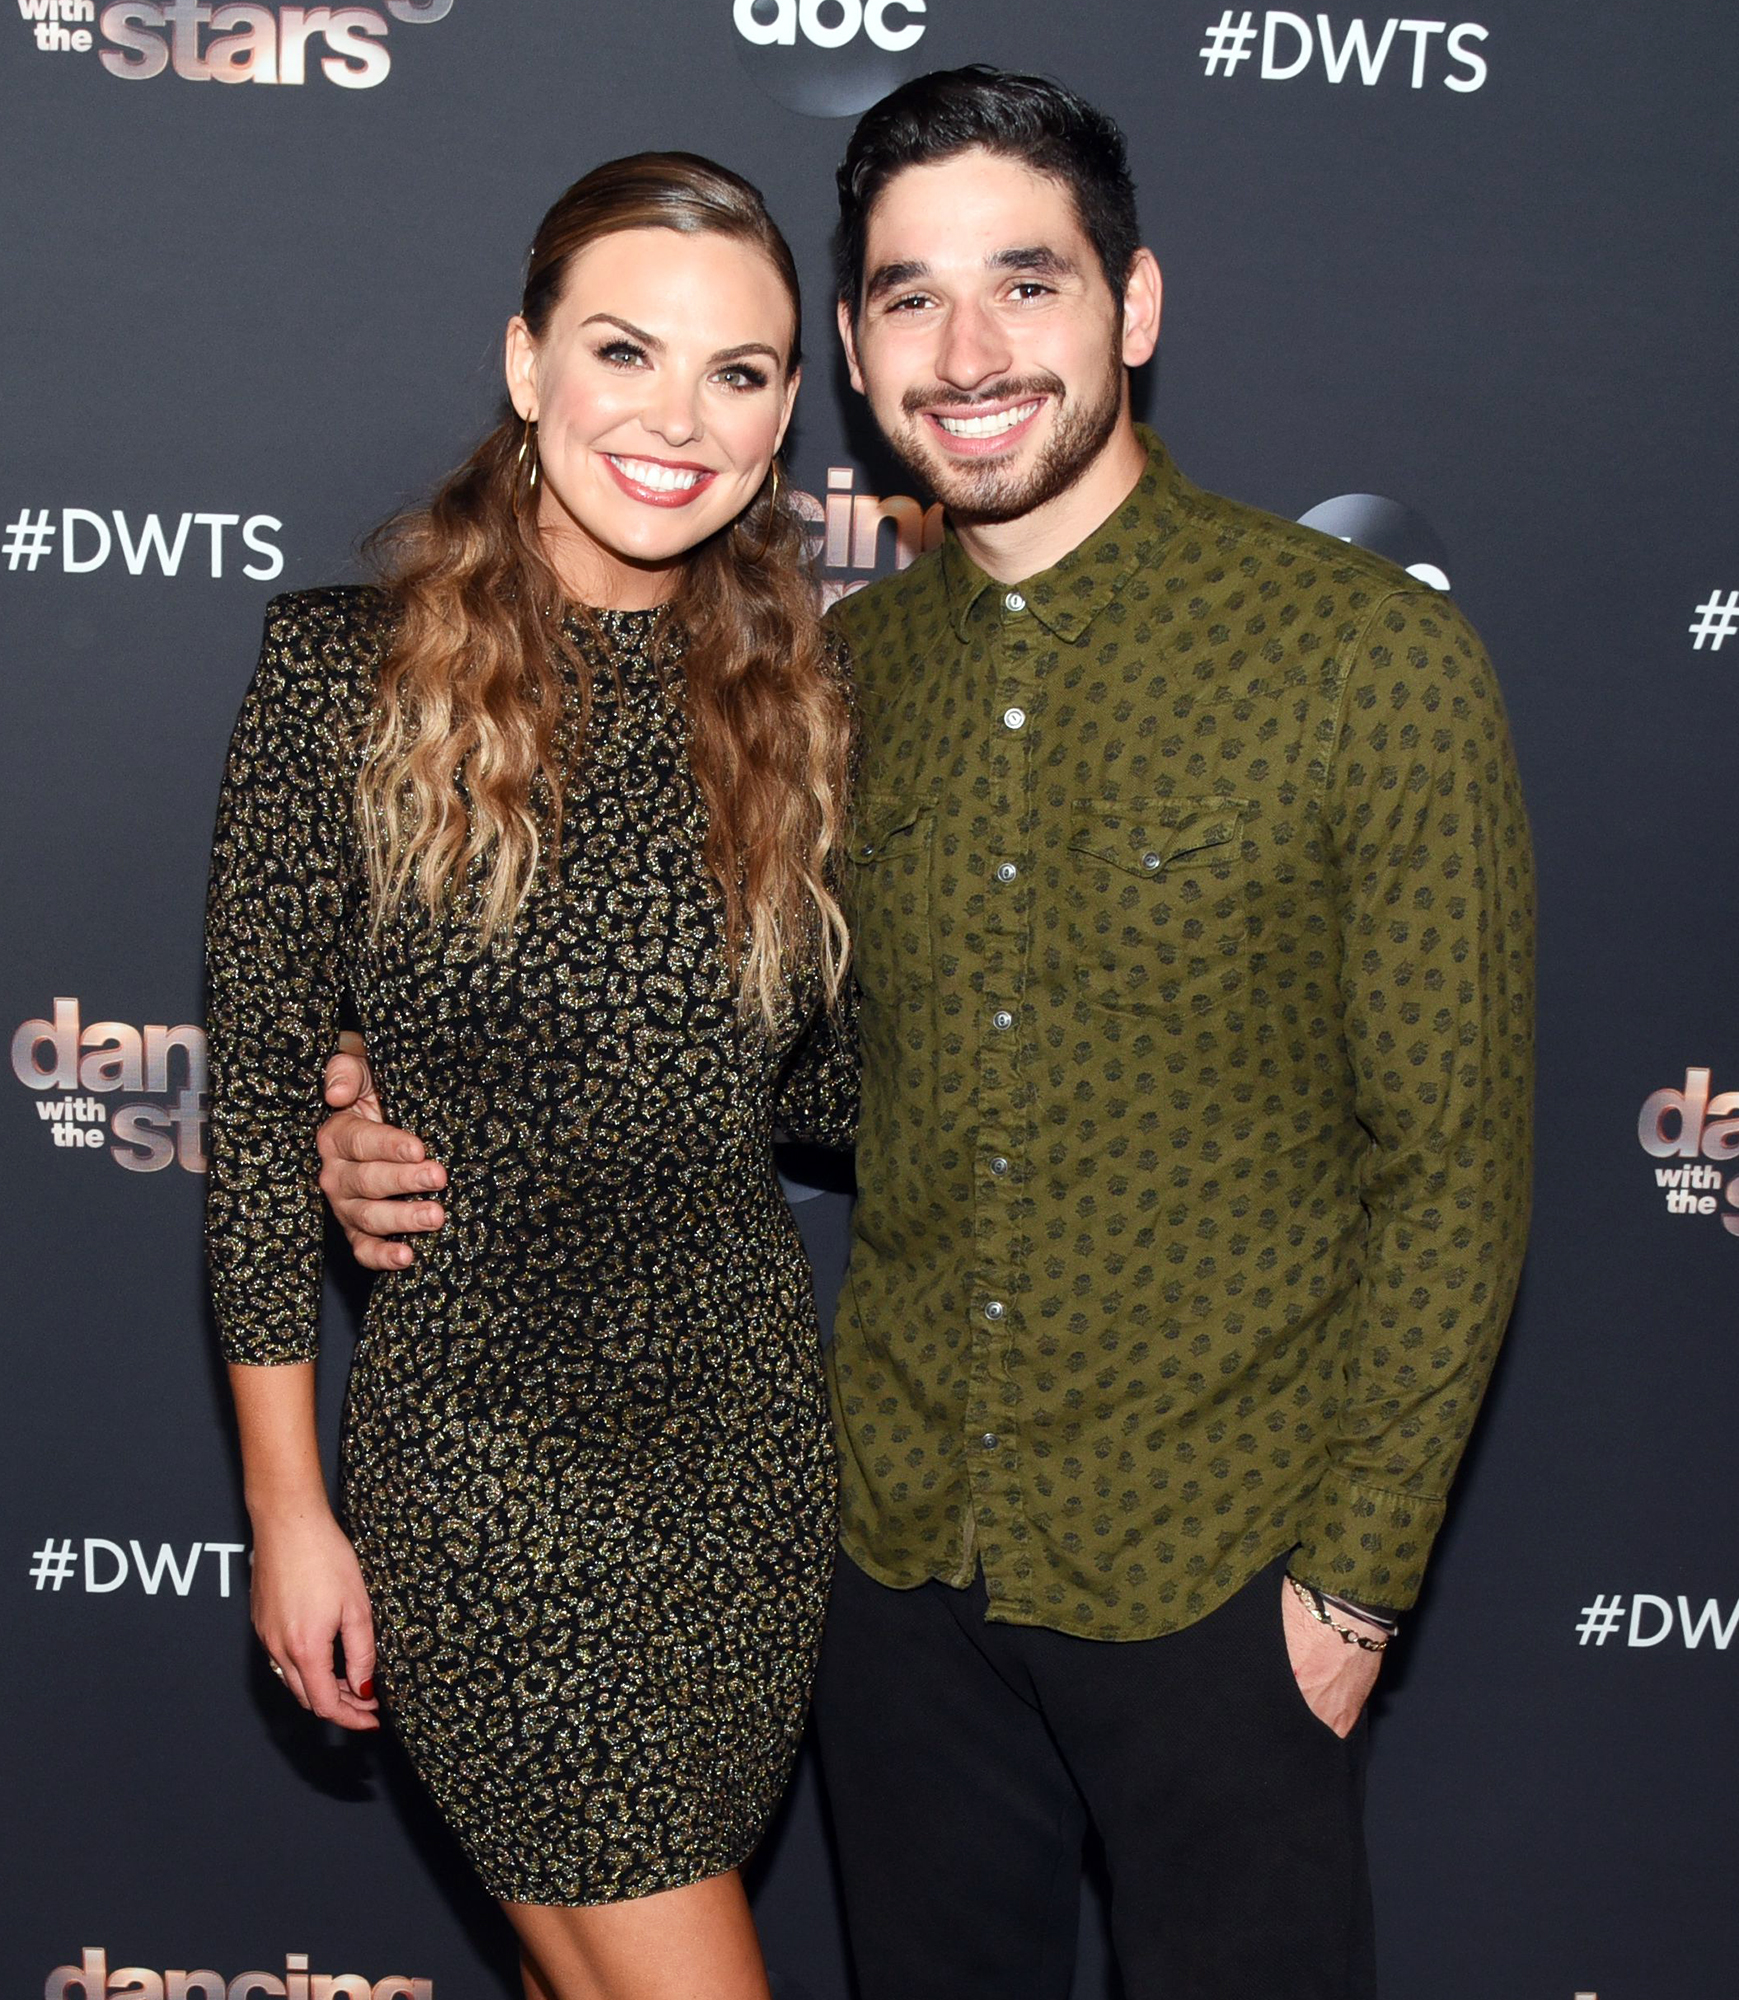 Dancing With the Stars Pro Alan Bersten Addresses Hannah Brown Dating Rumors